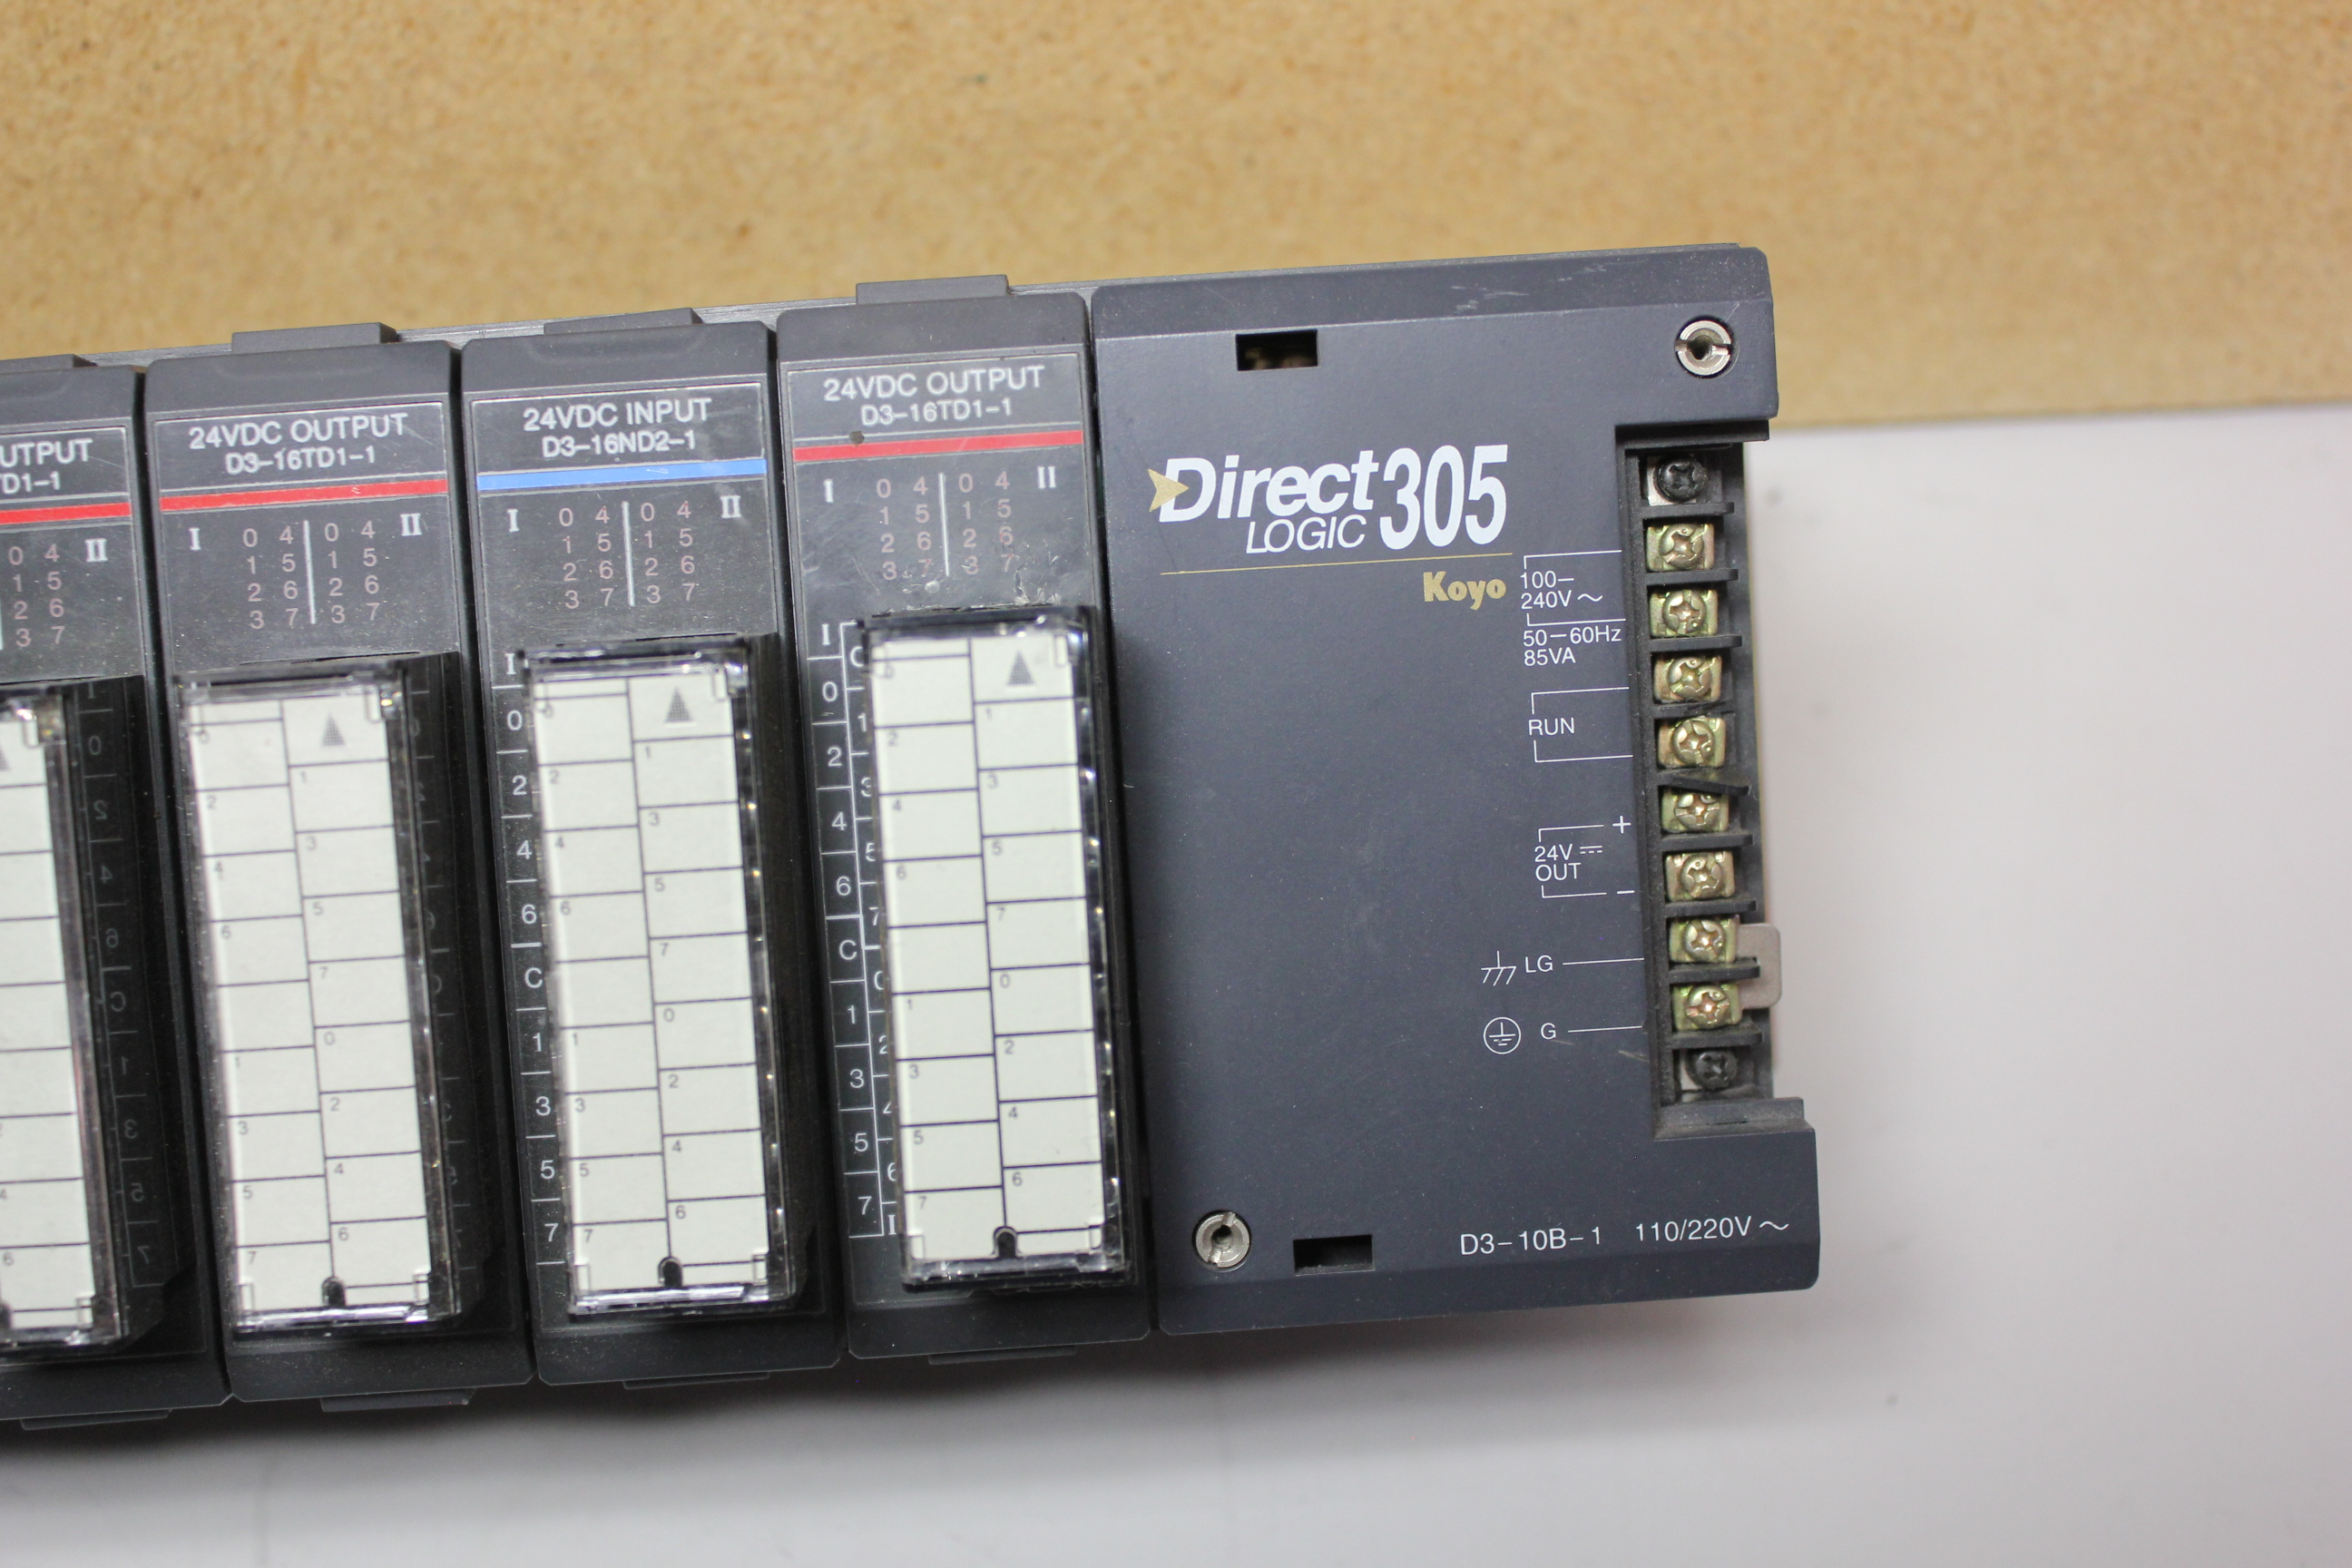 KOYO DIRECT LOGIC 305 PLC CHASSIS WITH 10 MODULES - Image 2 of 8